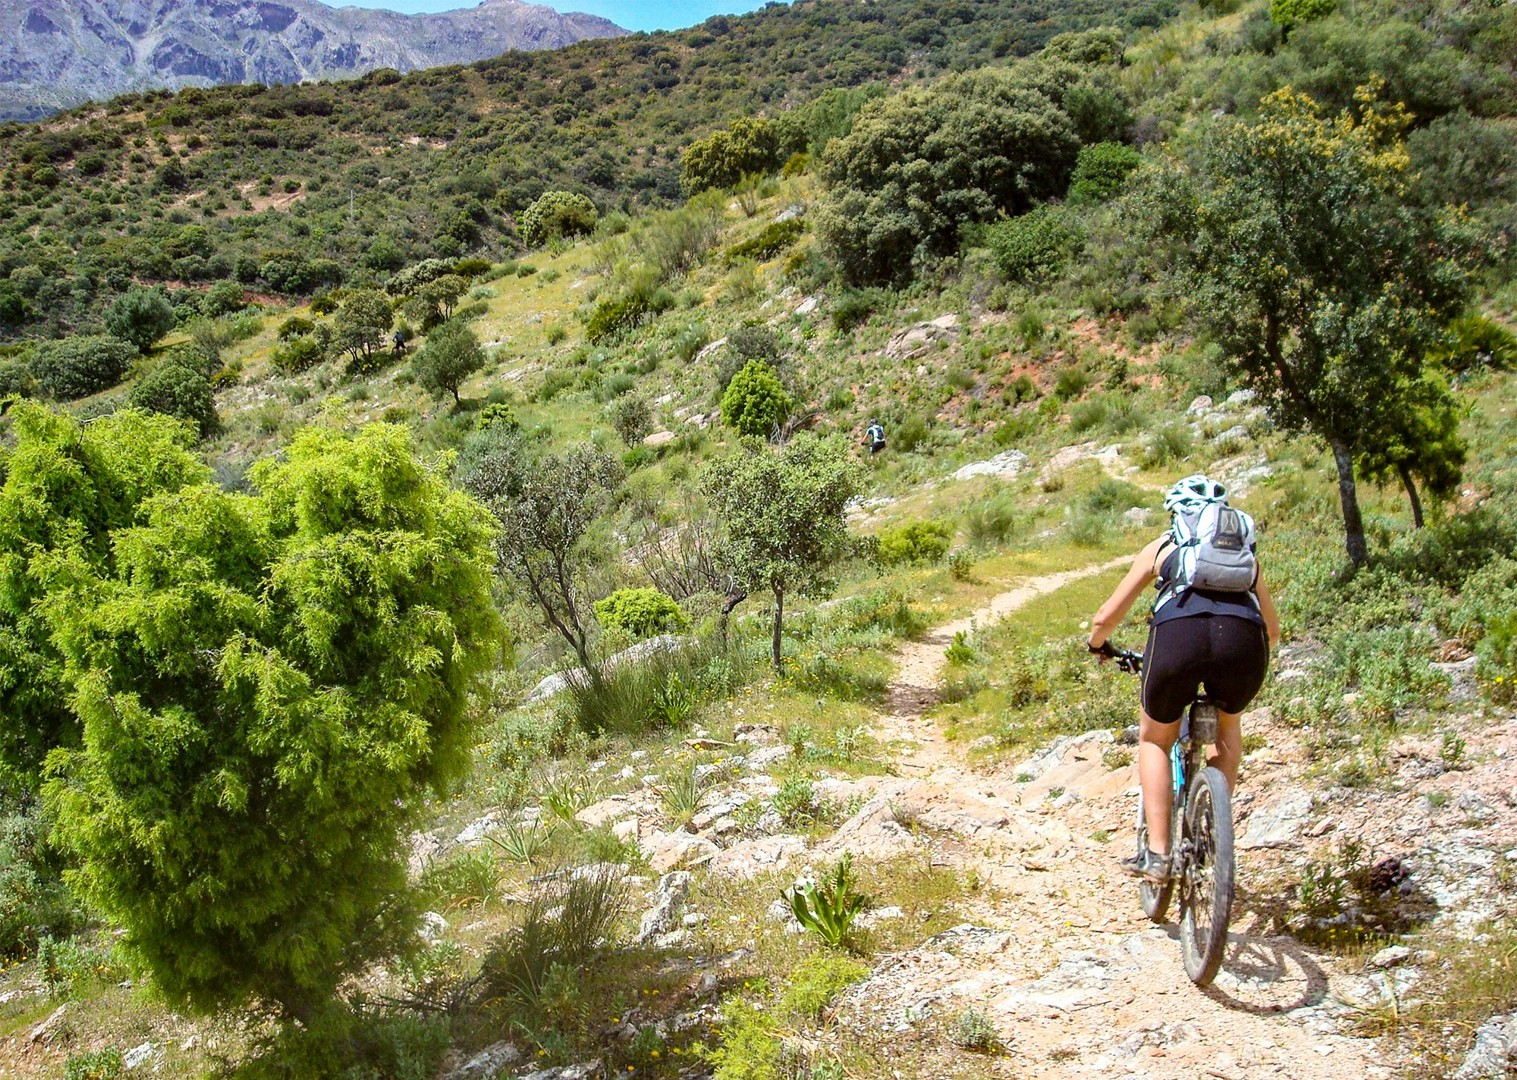 mountain-bike-guided-spain-trip-trans-andaluz-spanish-cycling-saddle-skedaddle.jpg - Spain - Trans Andaluz - Guided Mountain Bike Holiday - Mountain Biking